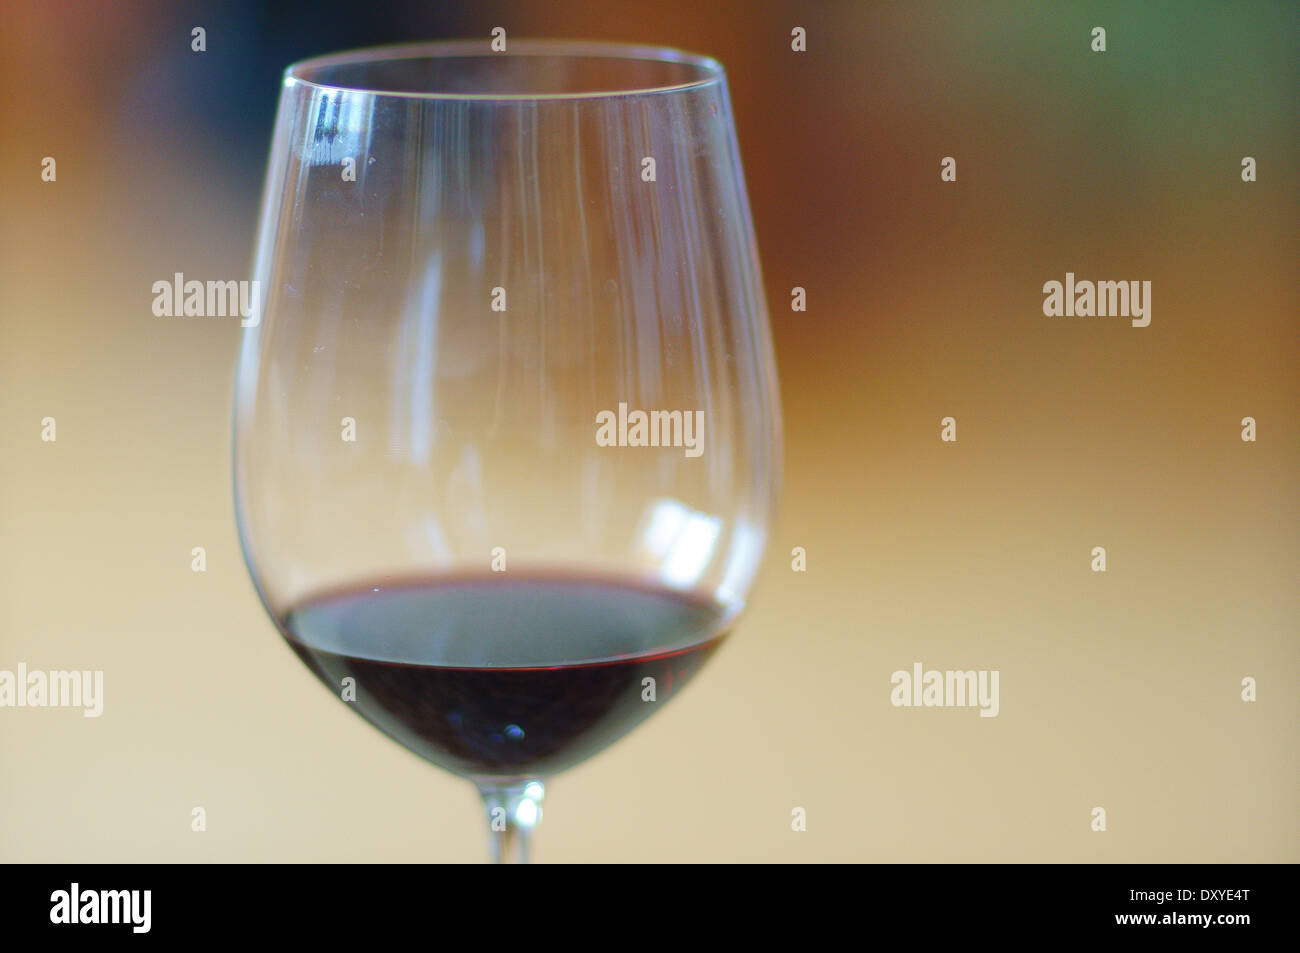 Big cup chalice with some wine - Stock Image